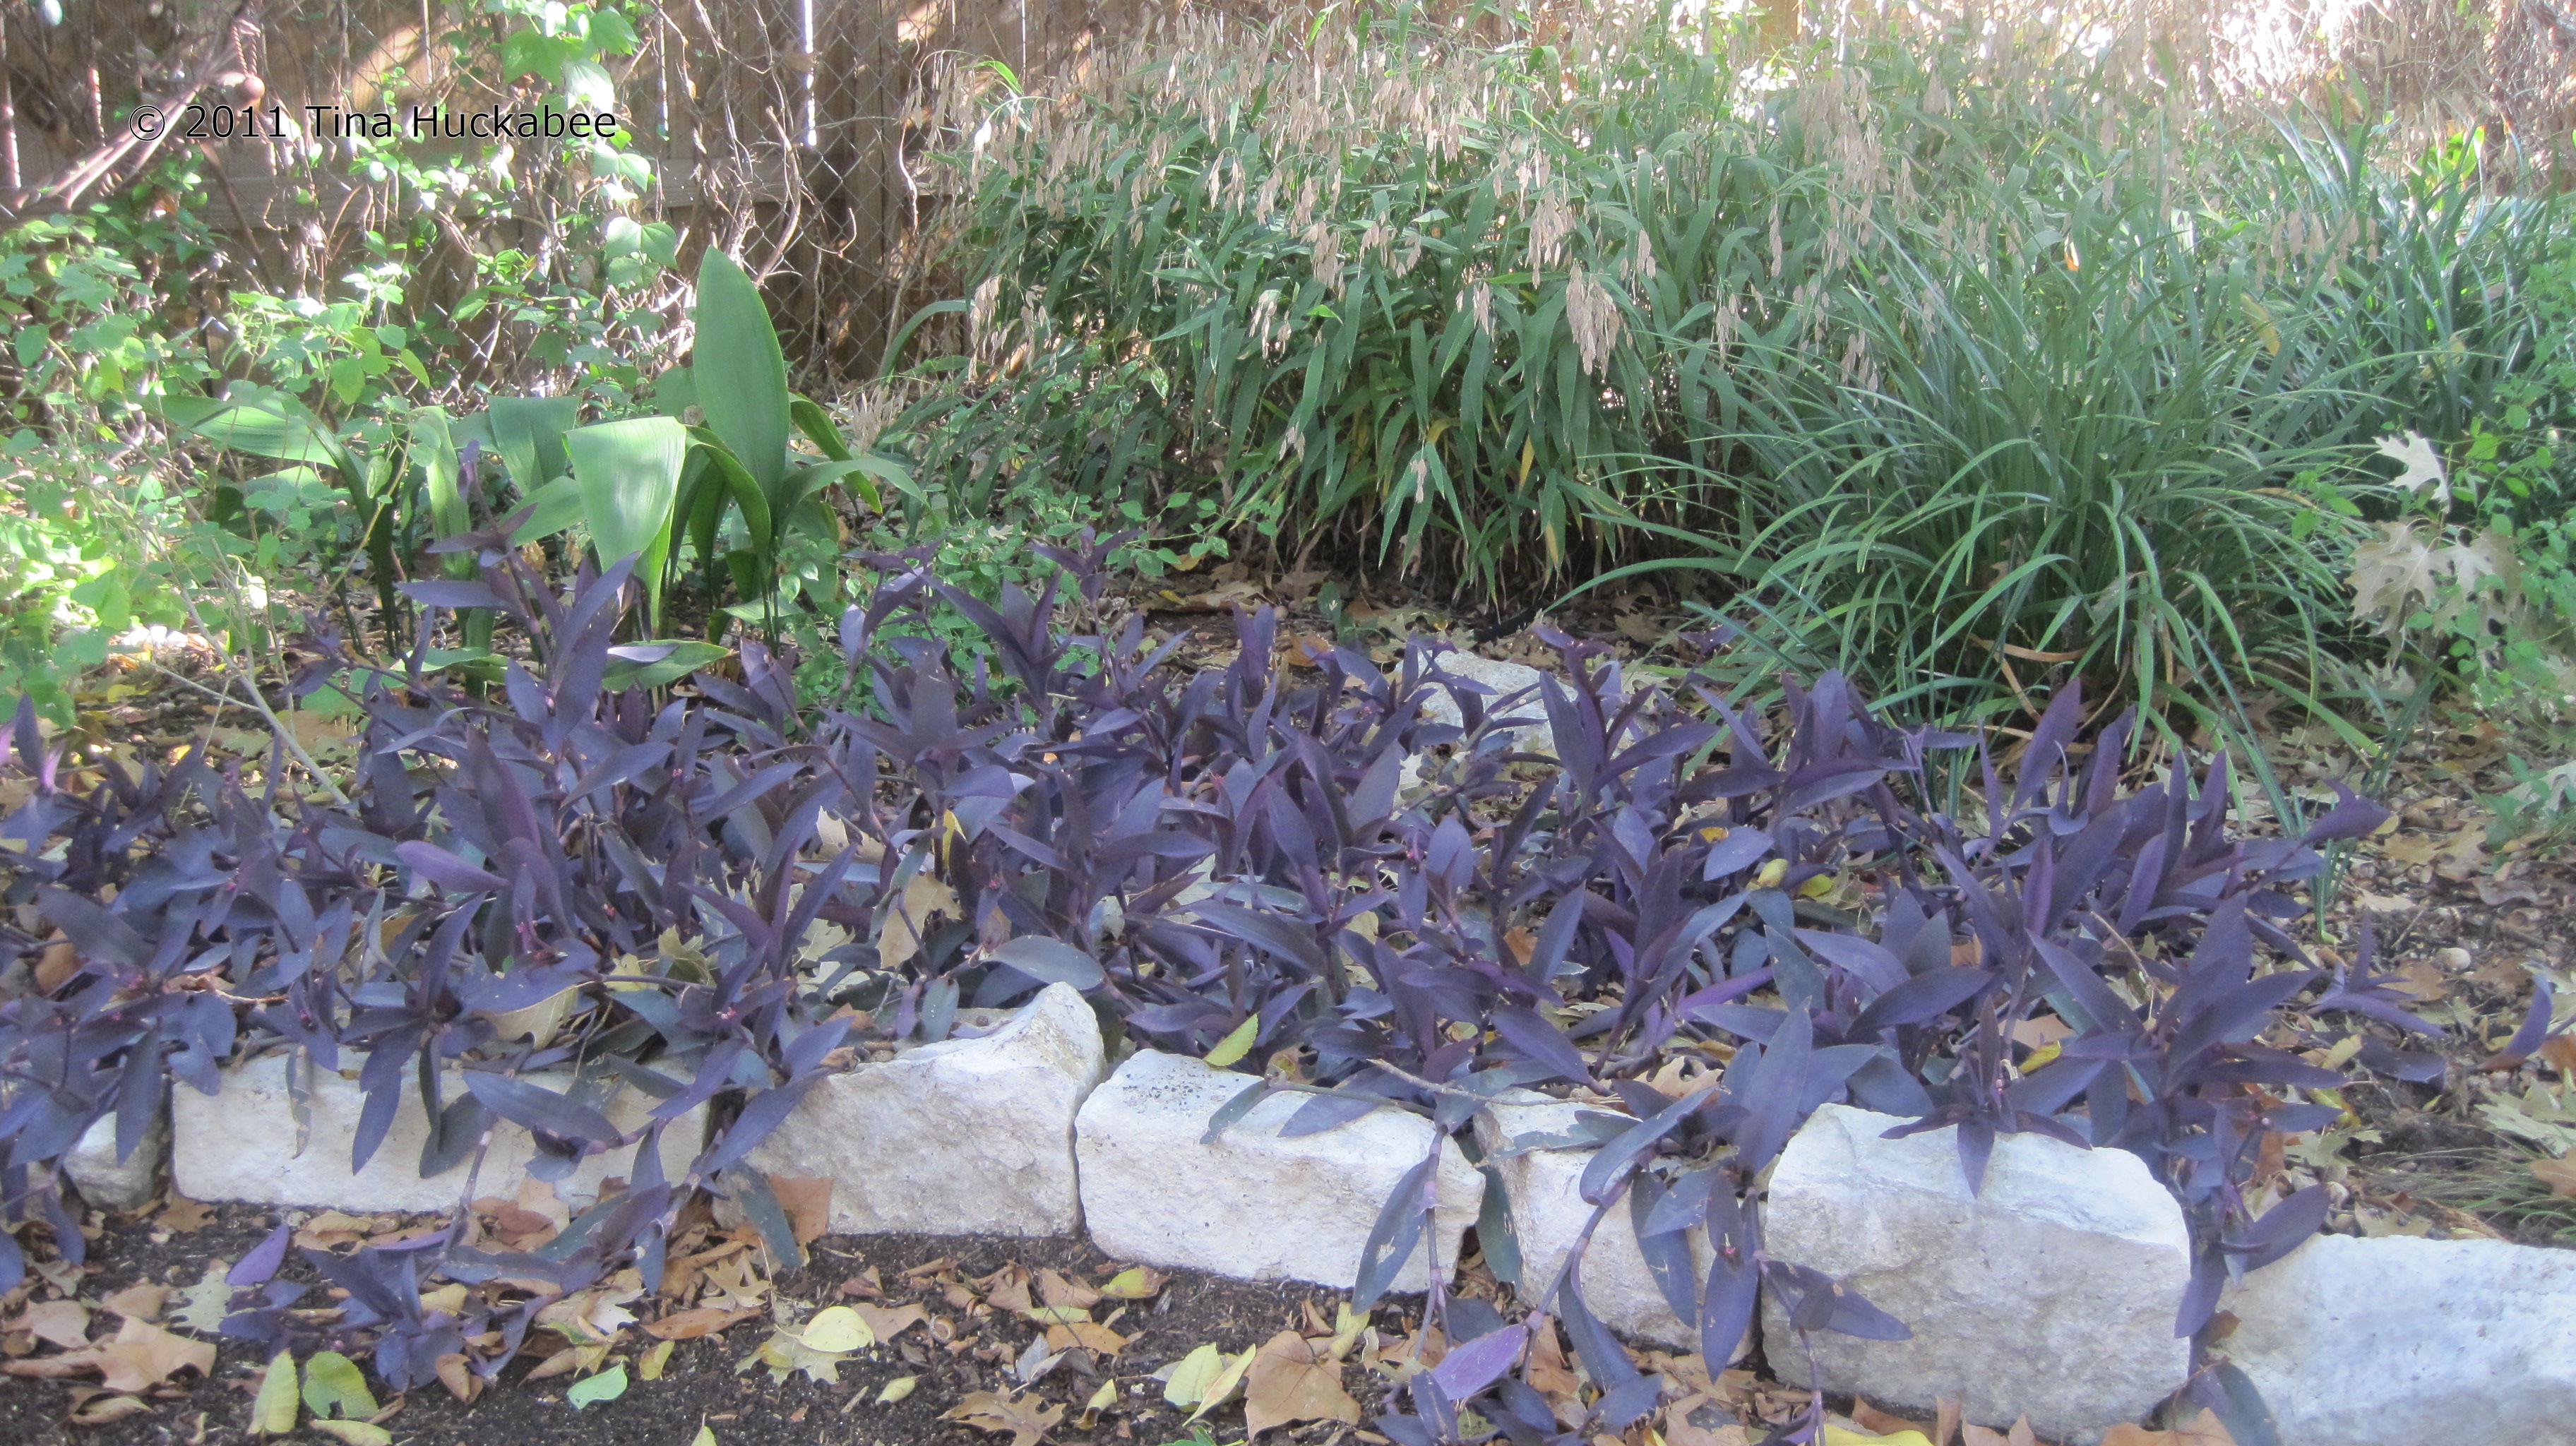 How to plant ground cover for shady areas - It Tends To Bloom More With More Sun And Sometimes Has A Tinge Of Green In The Leaves In Shade It Remains A Deep Purple Usually With A Few Blooms And